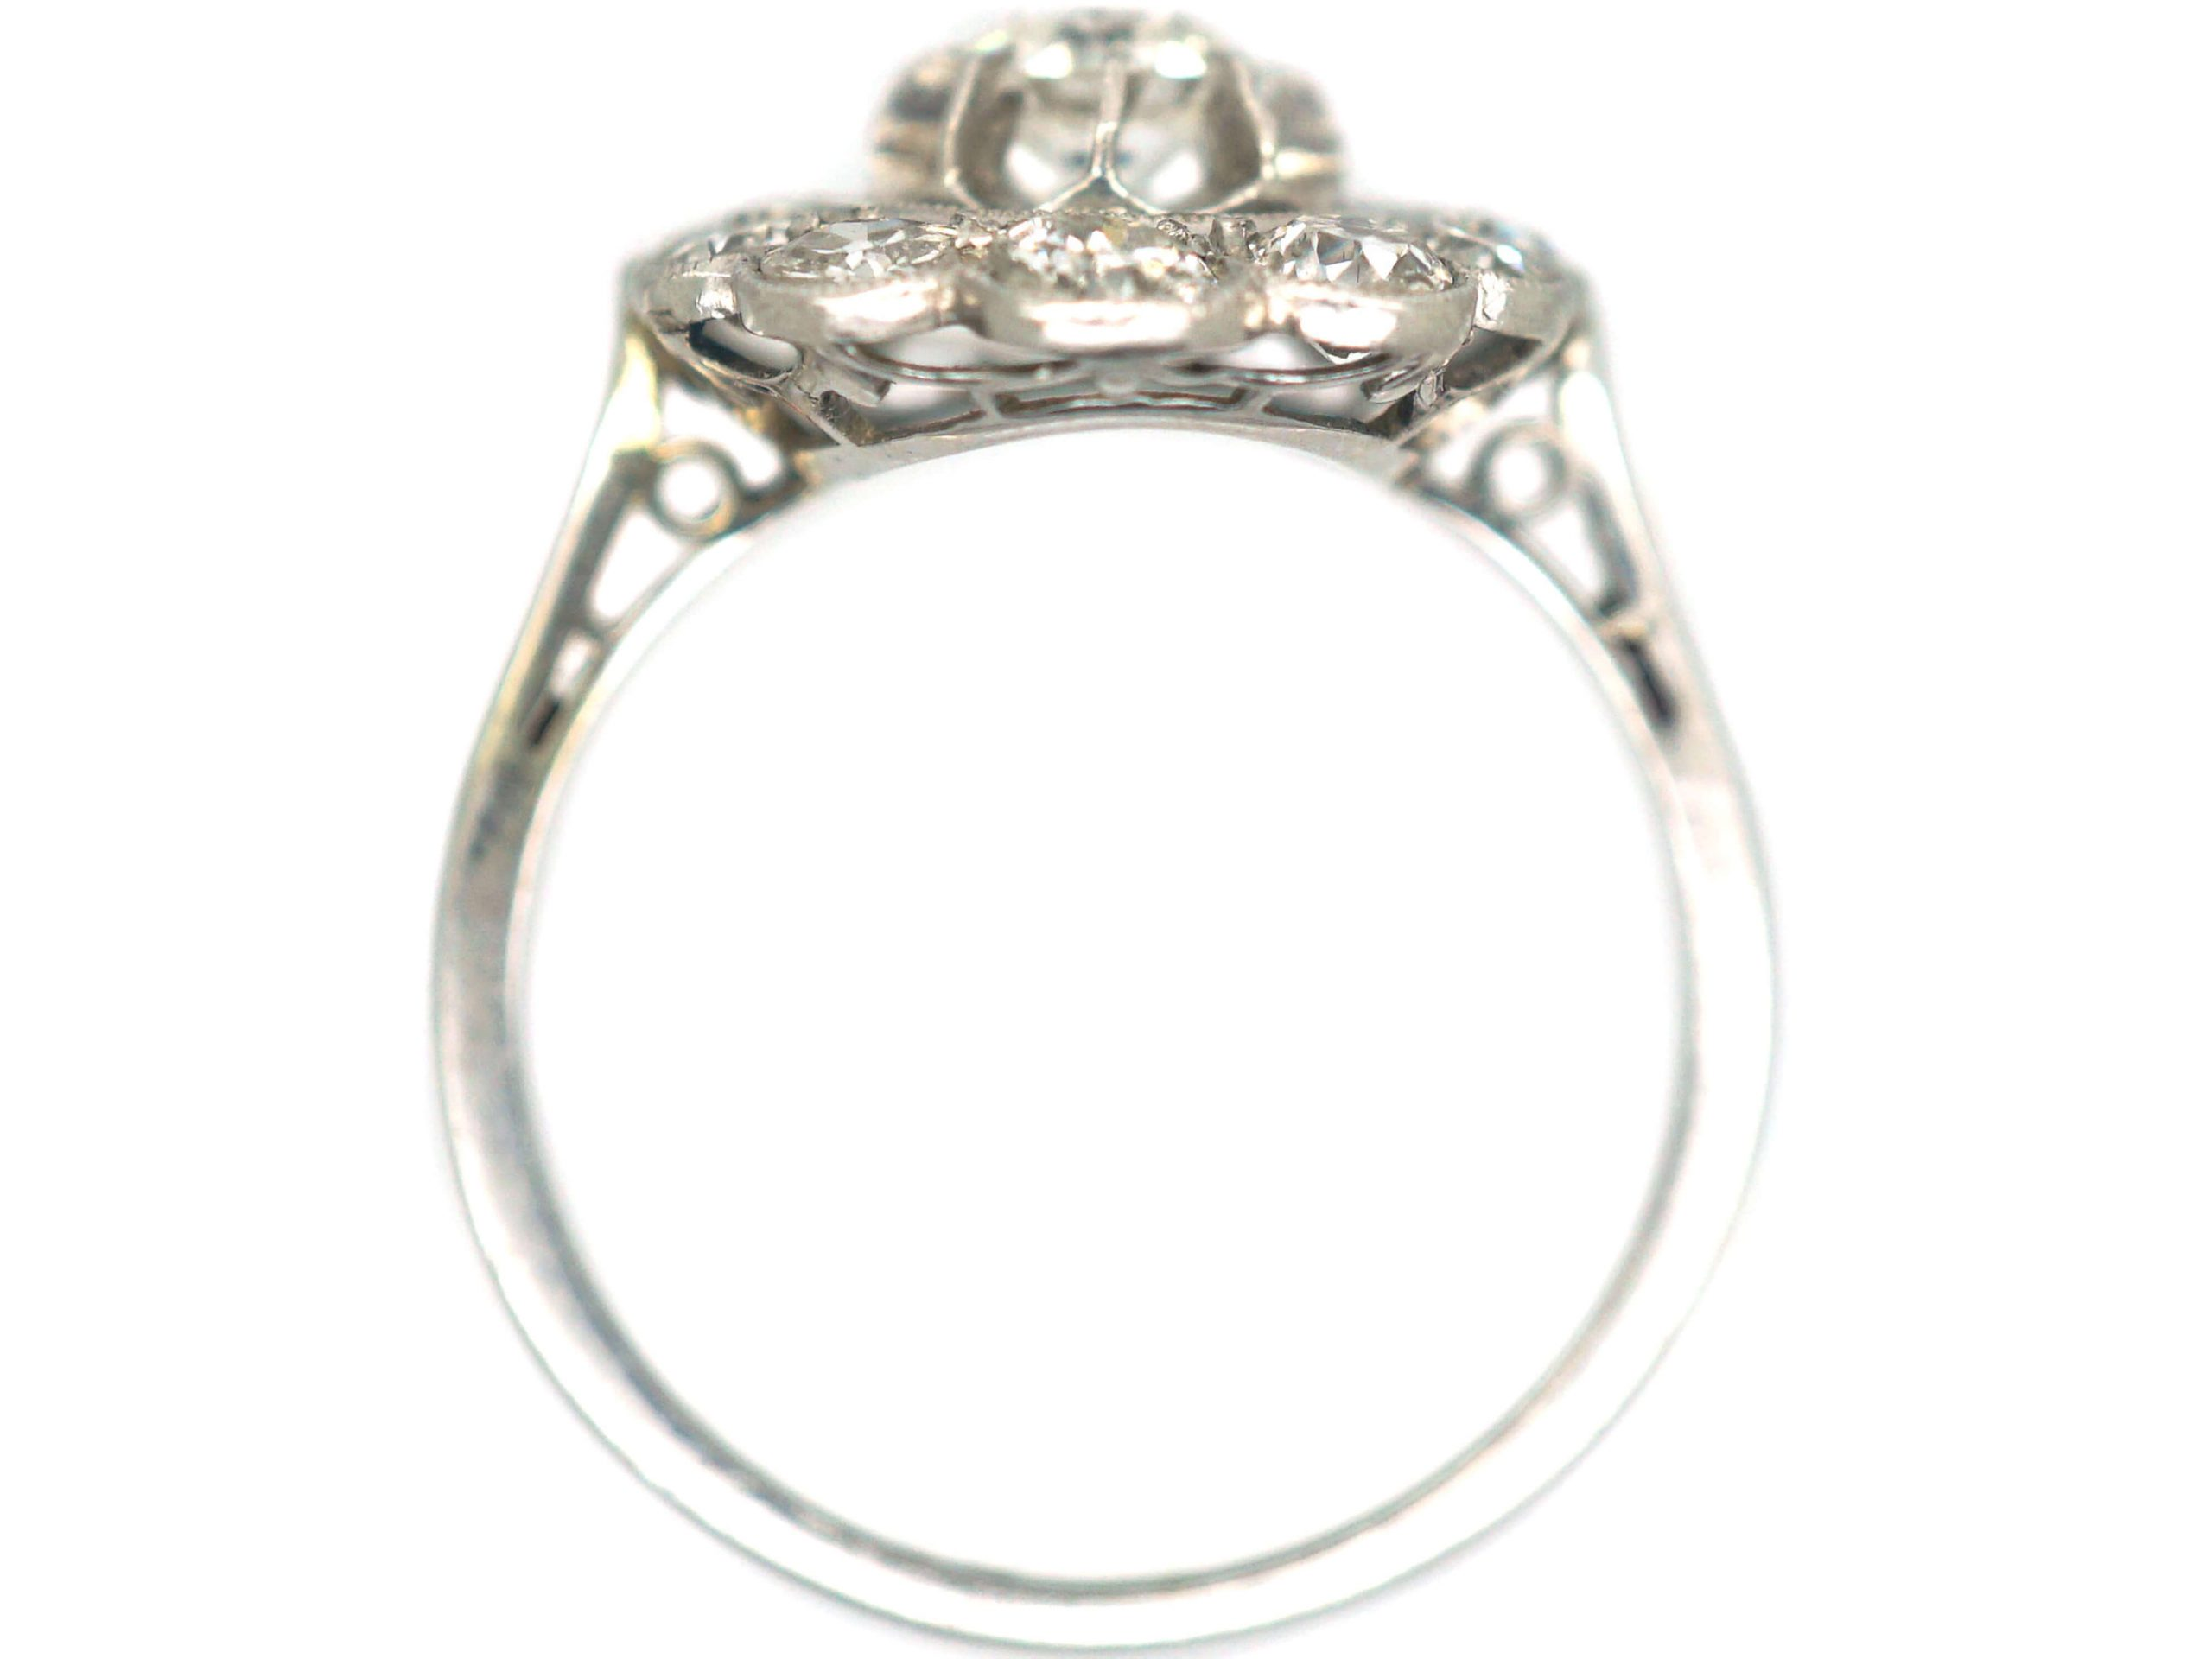 French Art Deco, 18ct White Gold & Diamond Oval Cluster Ring